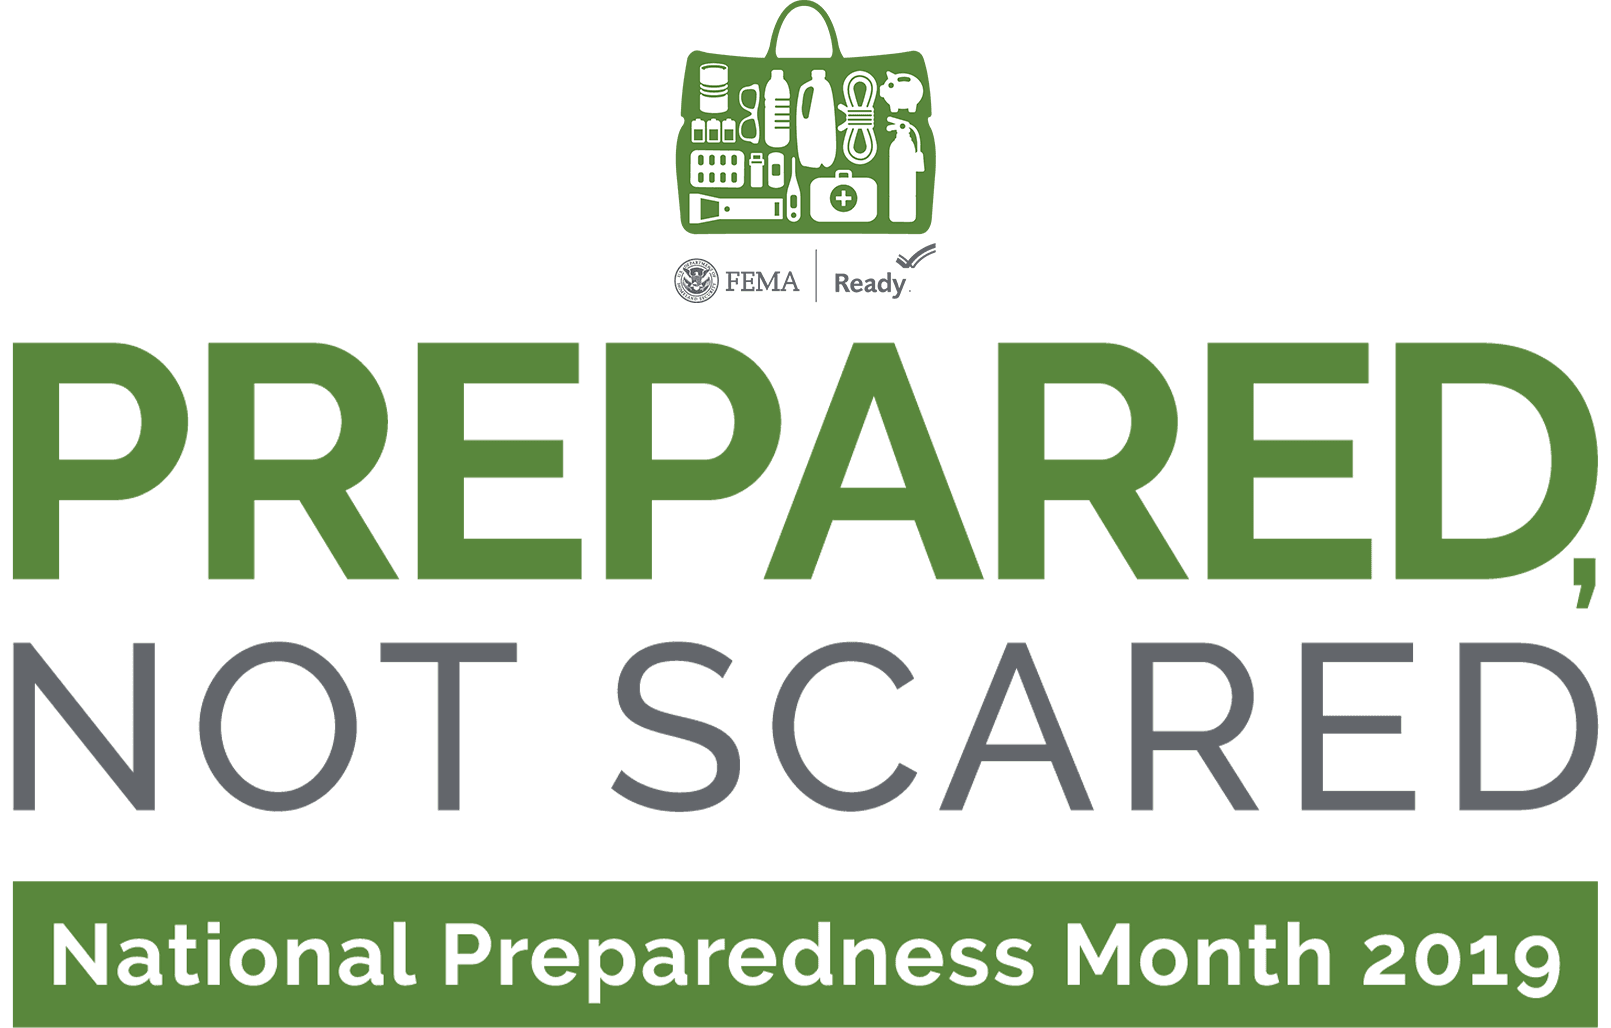 Prepared Not Scared: National Preparedness Month